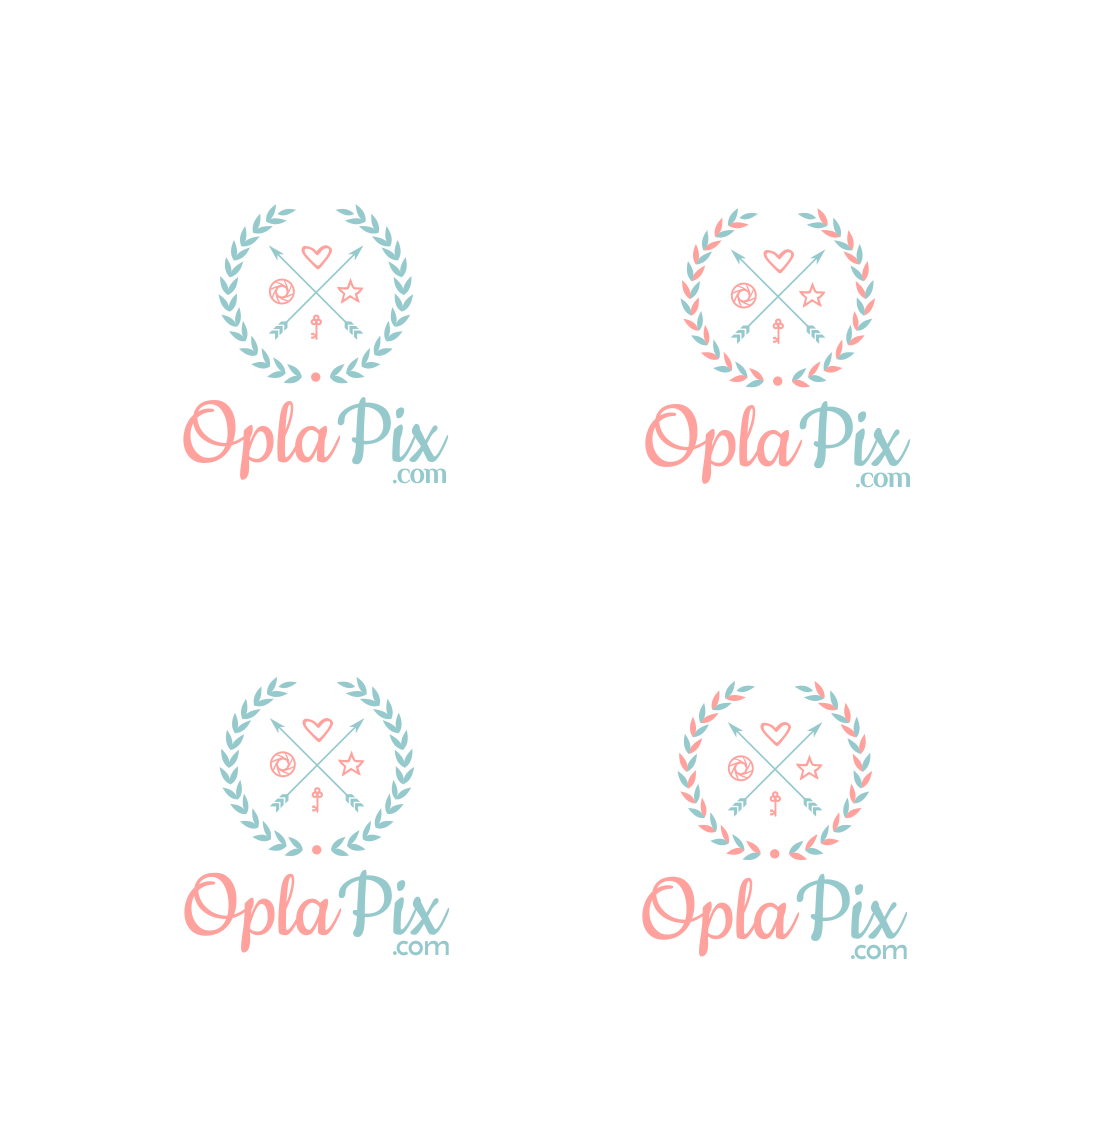 New logo for OPLAPIX